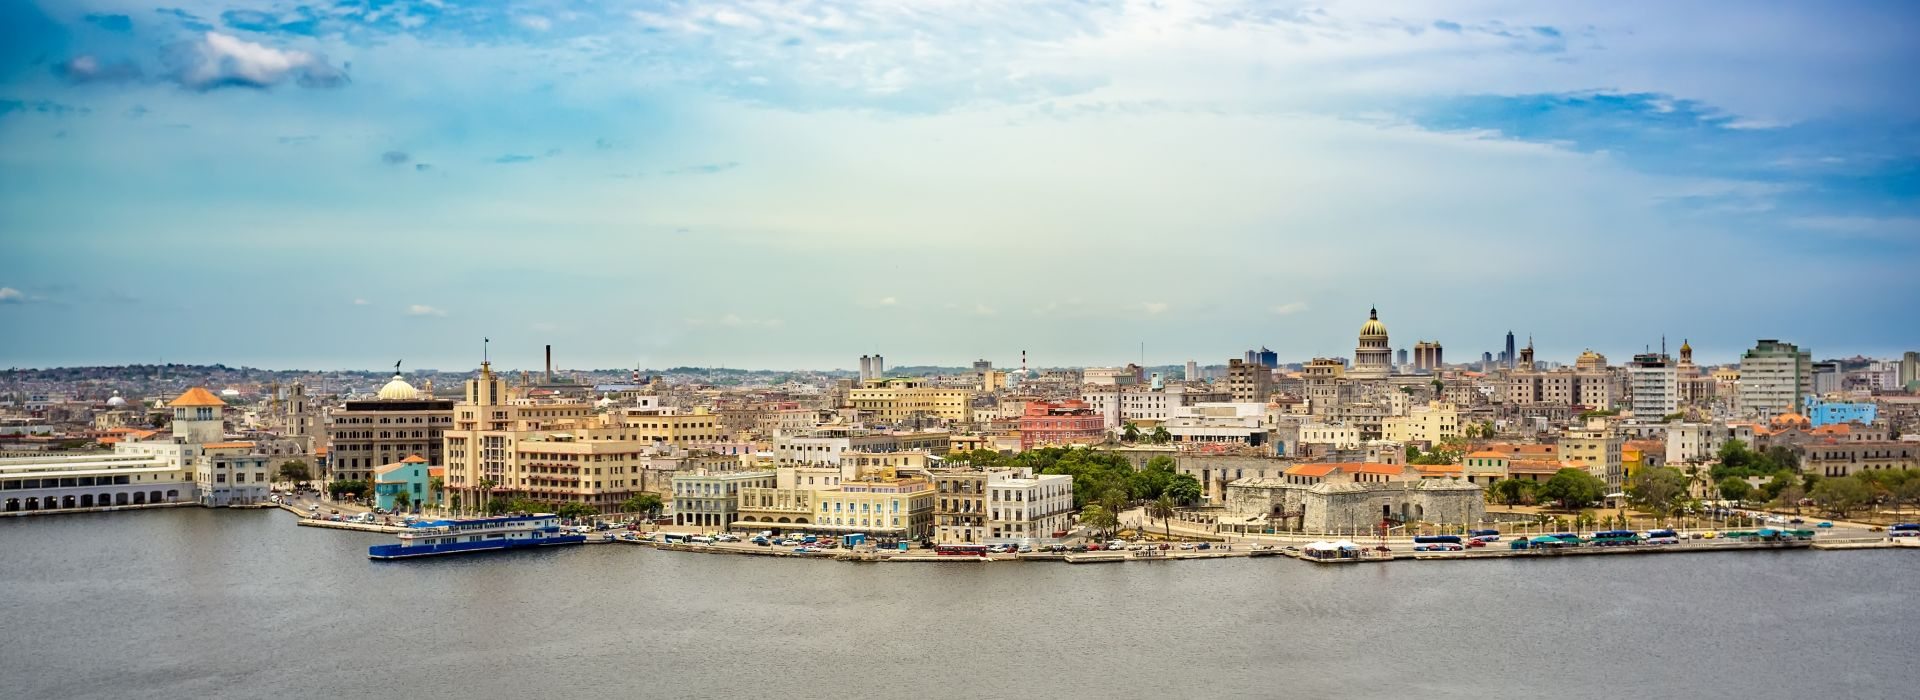 Travelling Cuba - Tours and Trips in Cuba